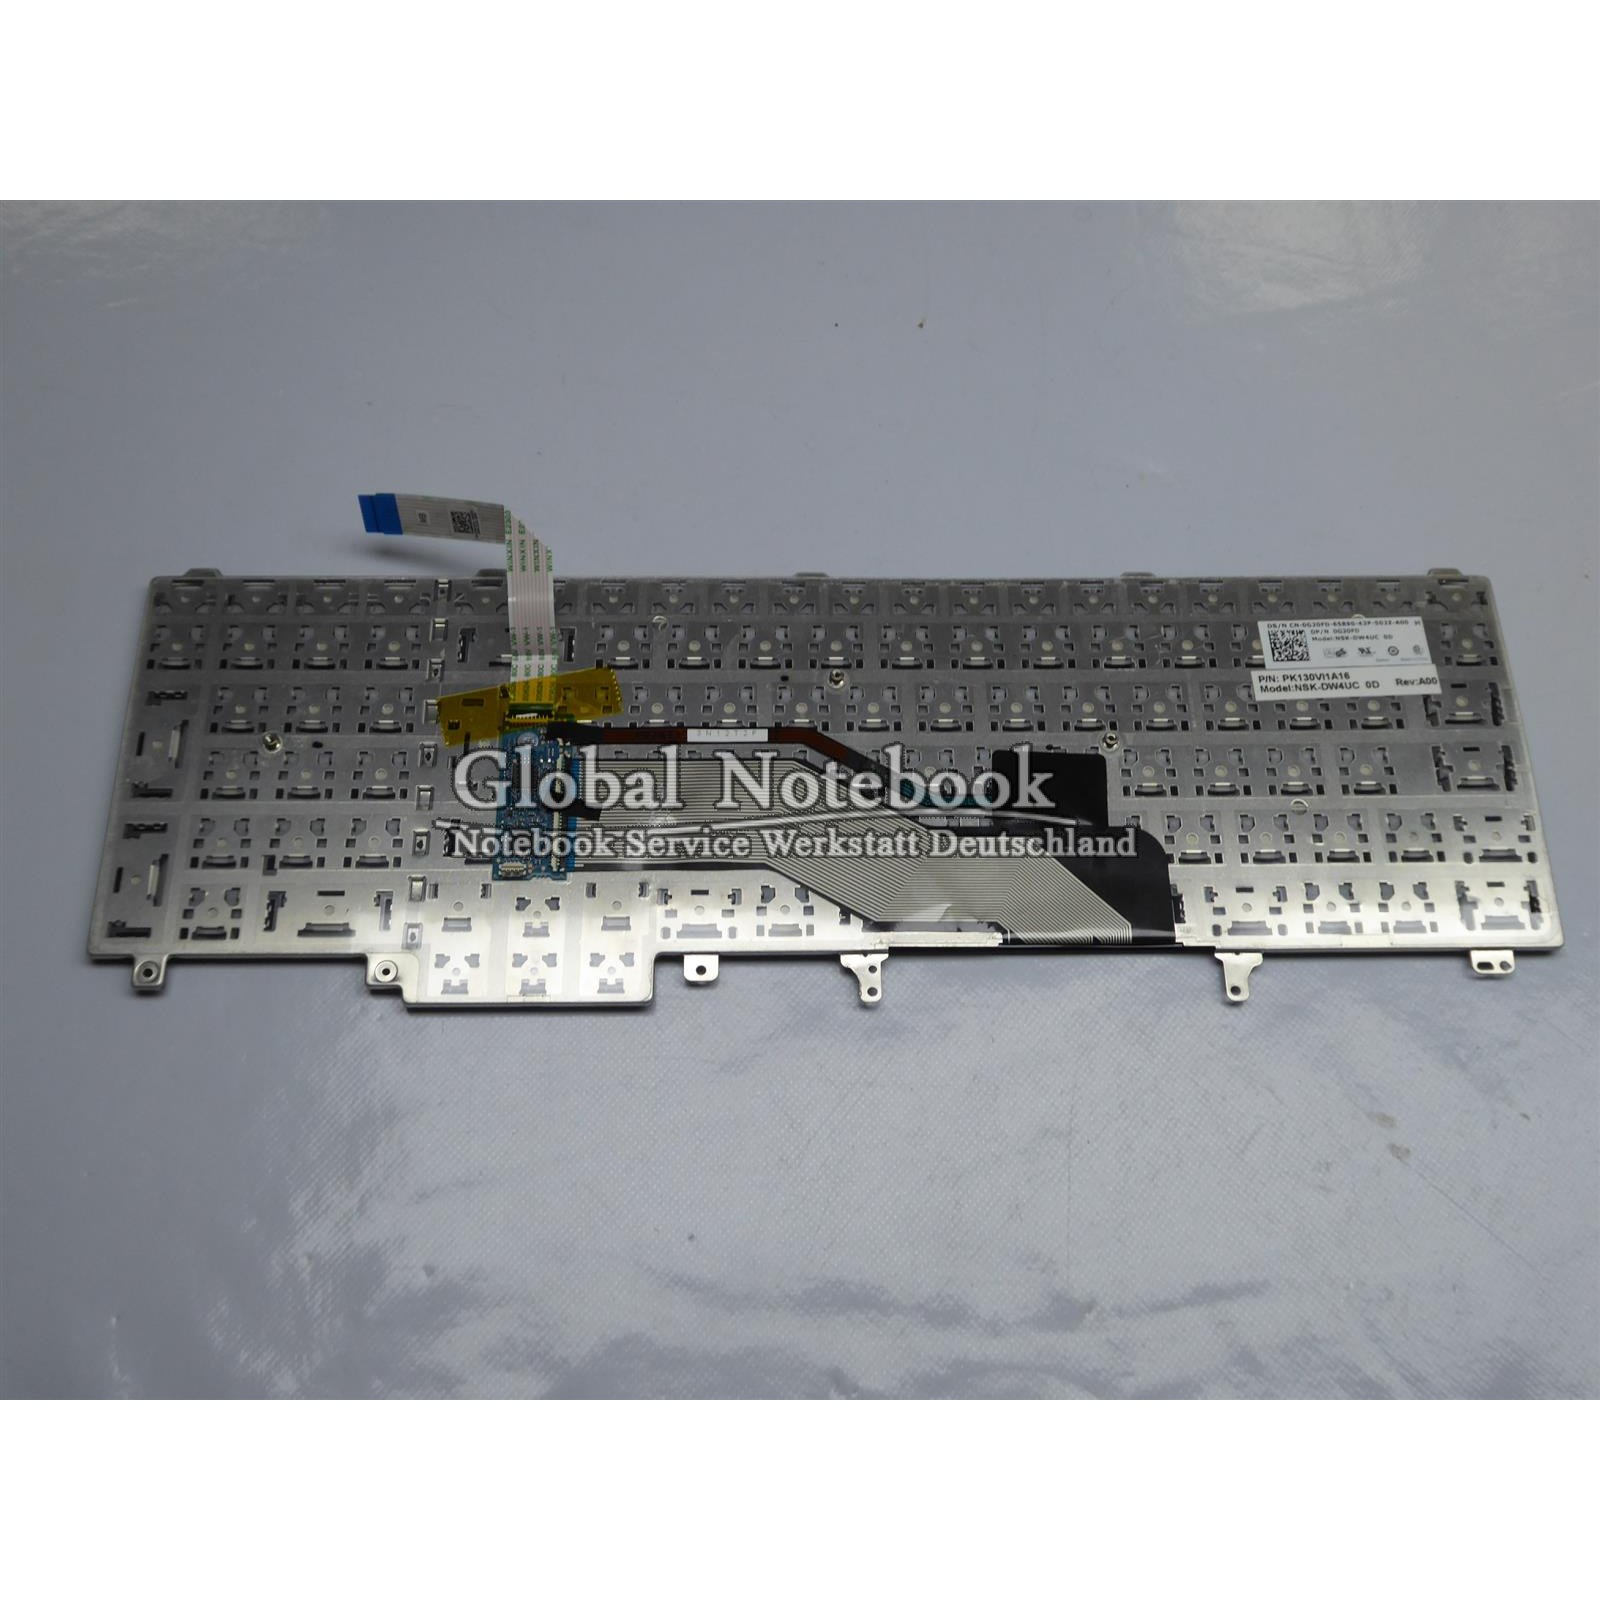 0G20FD 3802 Dell Latitude e6540 ORIGINAL Keyboard Dansk Layout 0G20FD 3802